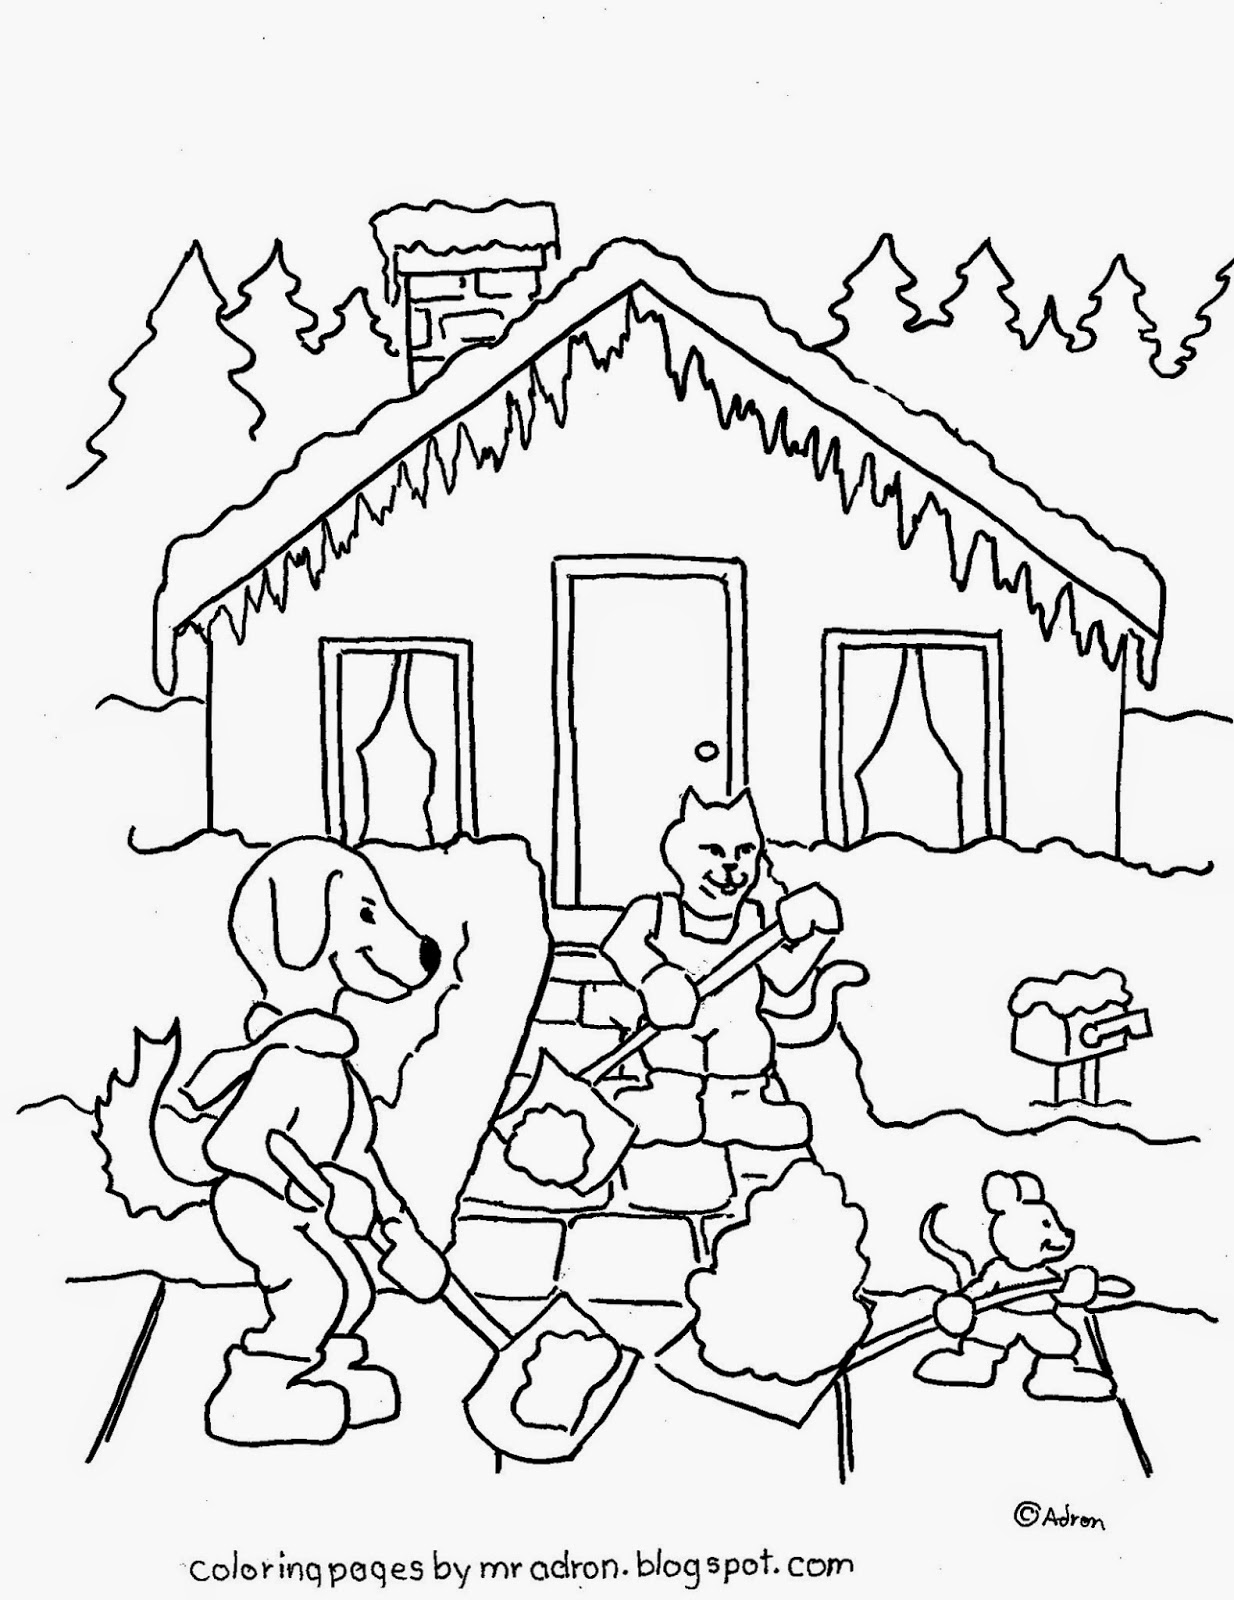 Coloring Pages for Kids by Mr. Adron: Free Coloring Page